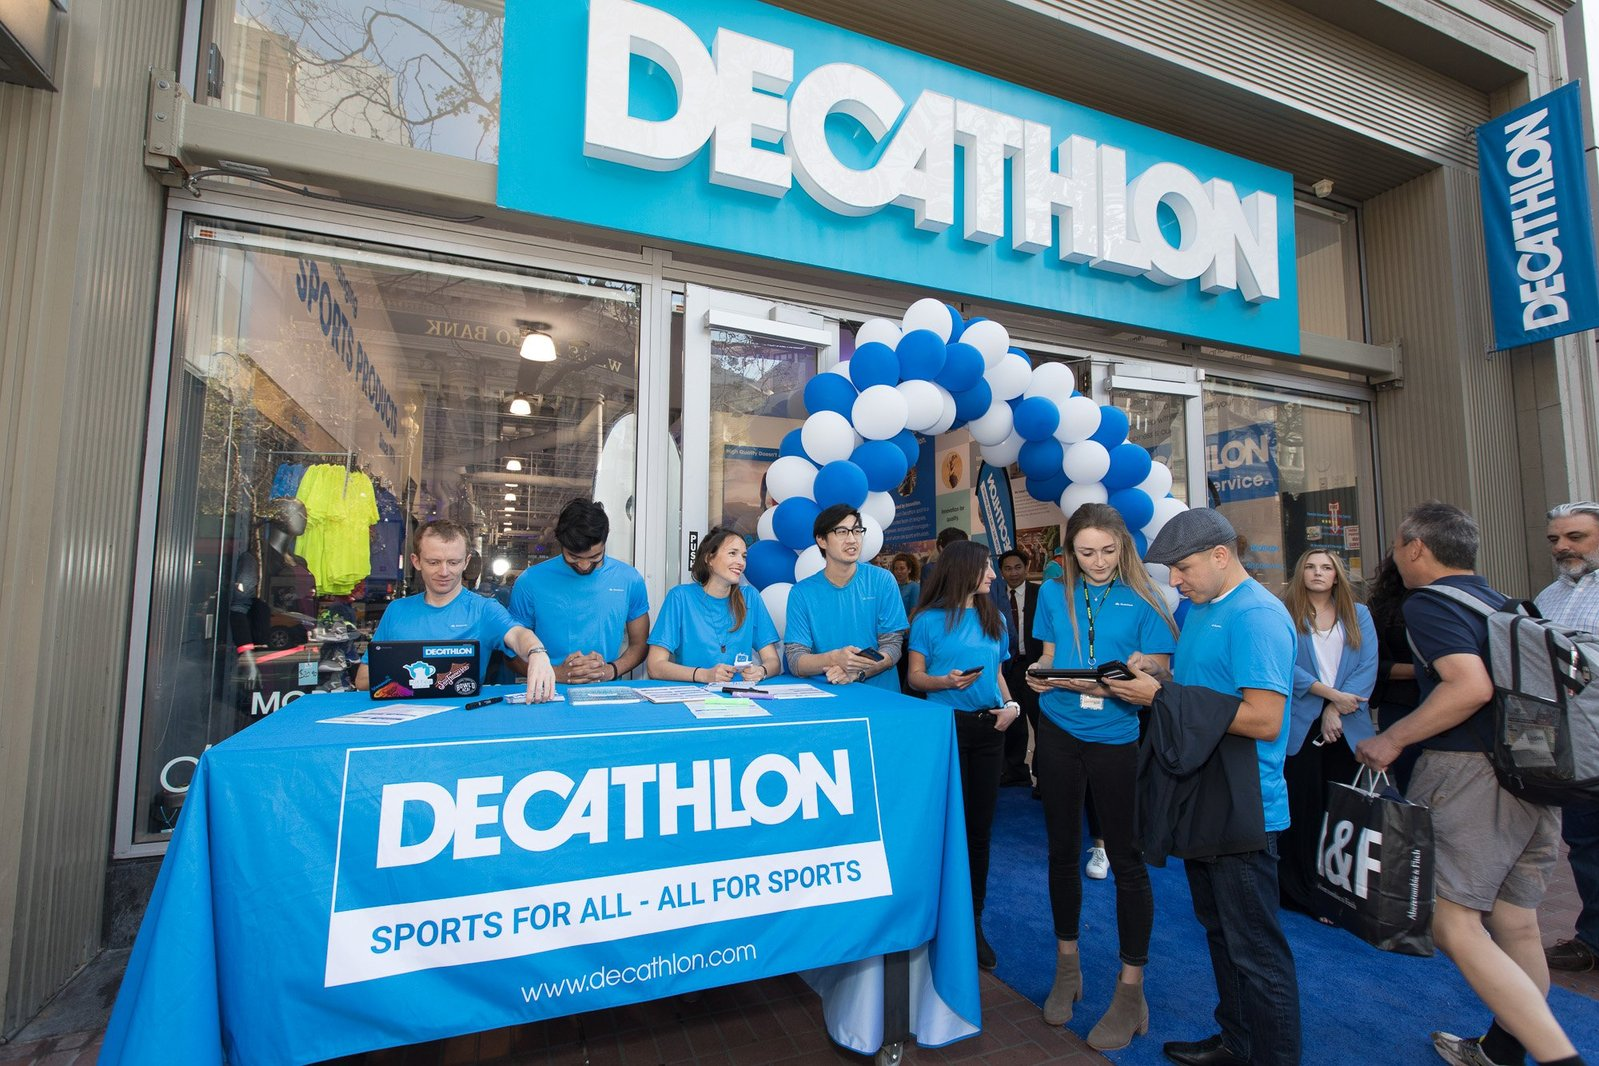 Decathlon Launches the Store of the Future with Proper Mobile Point-of-Sale Hardware